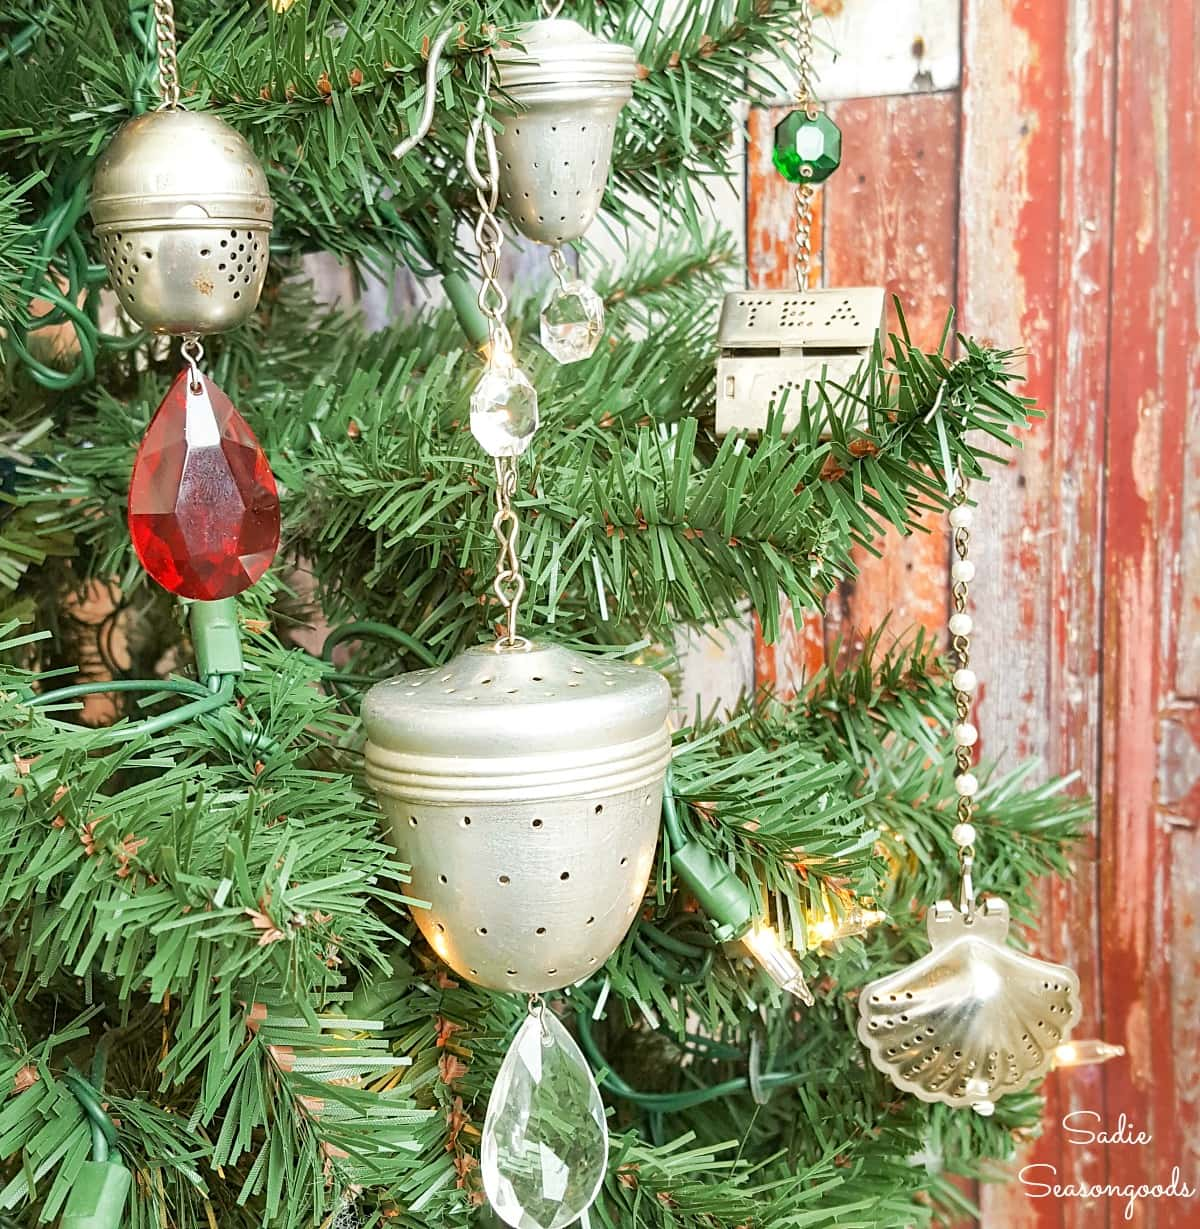 Loose Leaf Tea Strainers as Christmas Ornaments